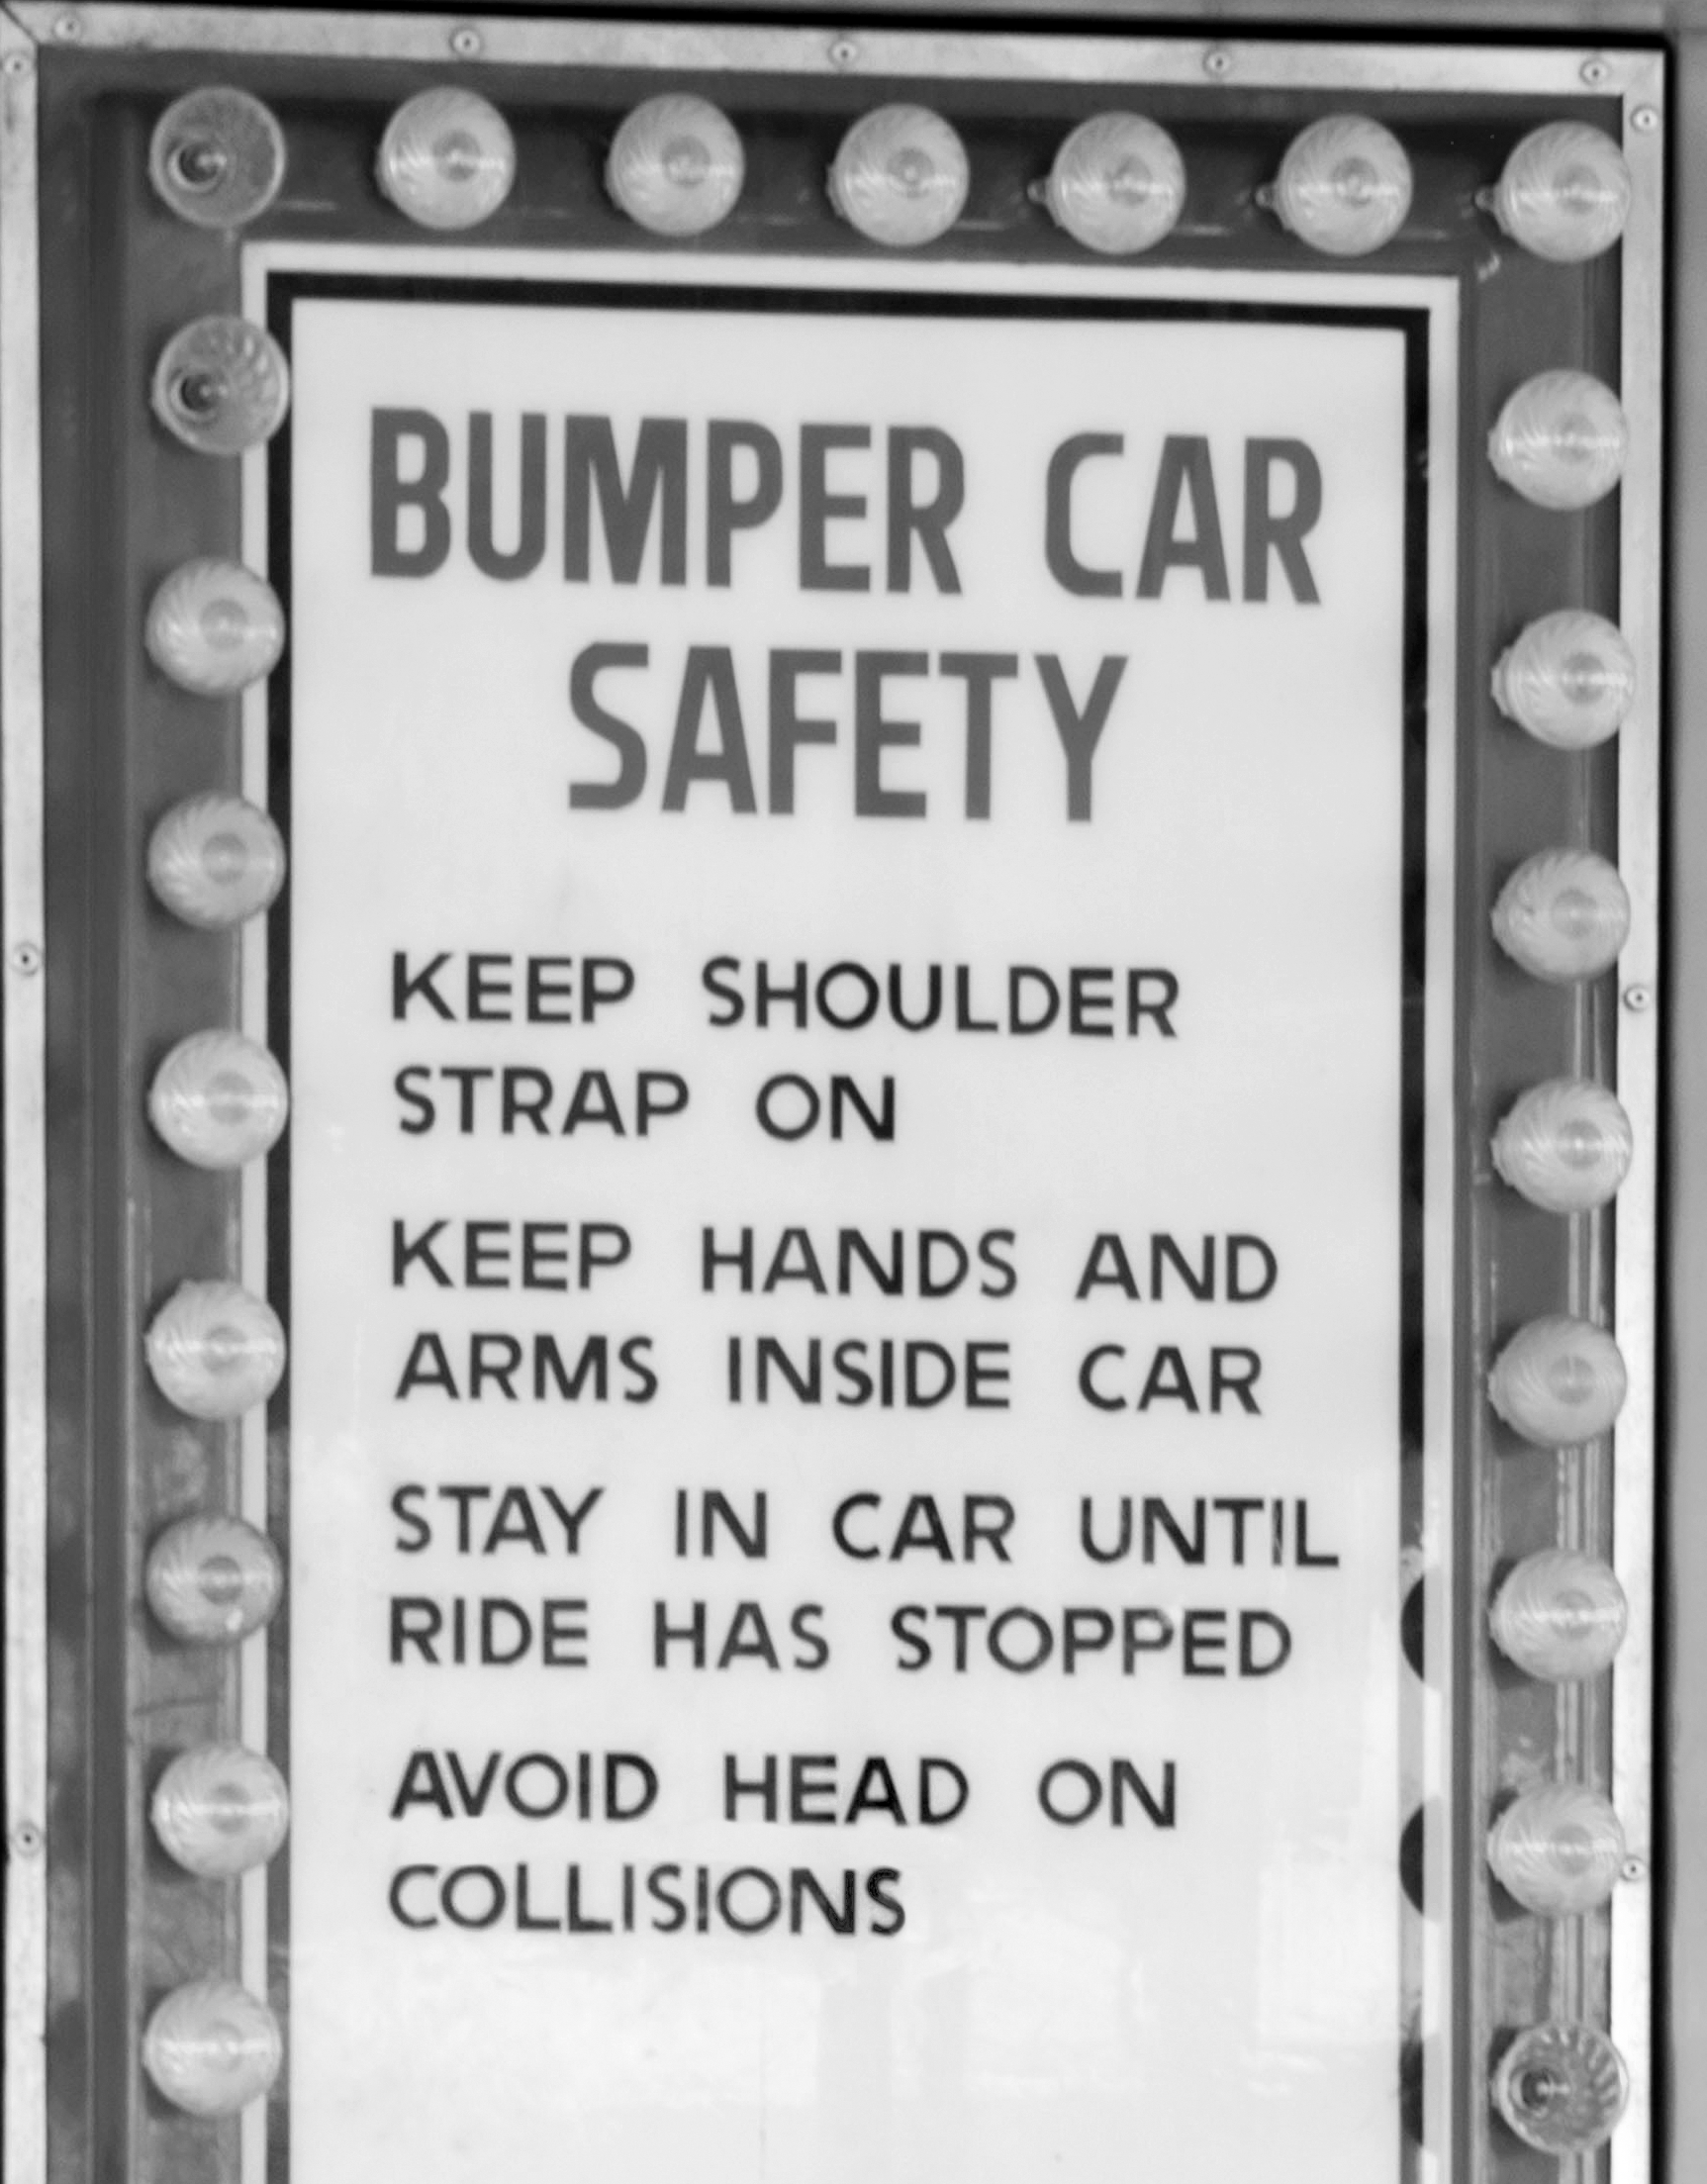 ang633misbumper-car-safety-wb